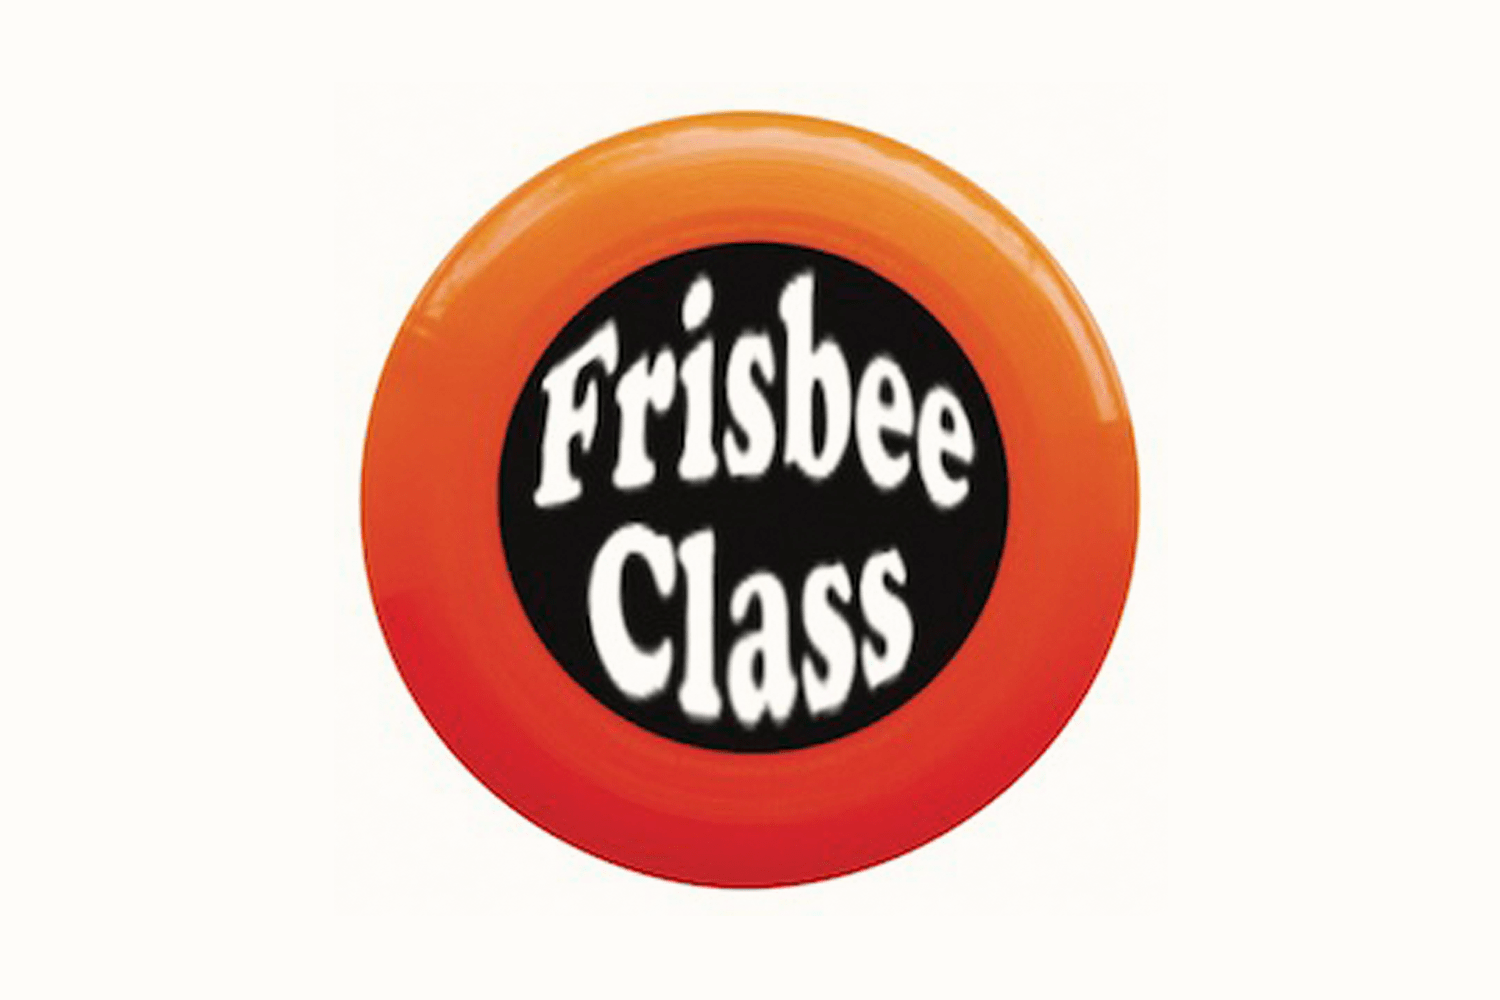 Frisbee Class / Flying Disc Lessons